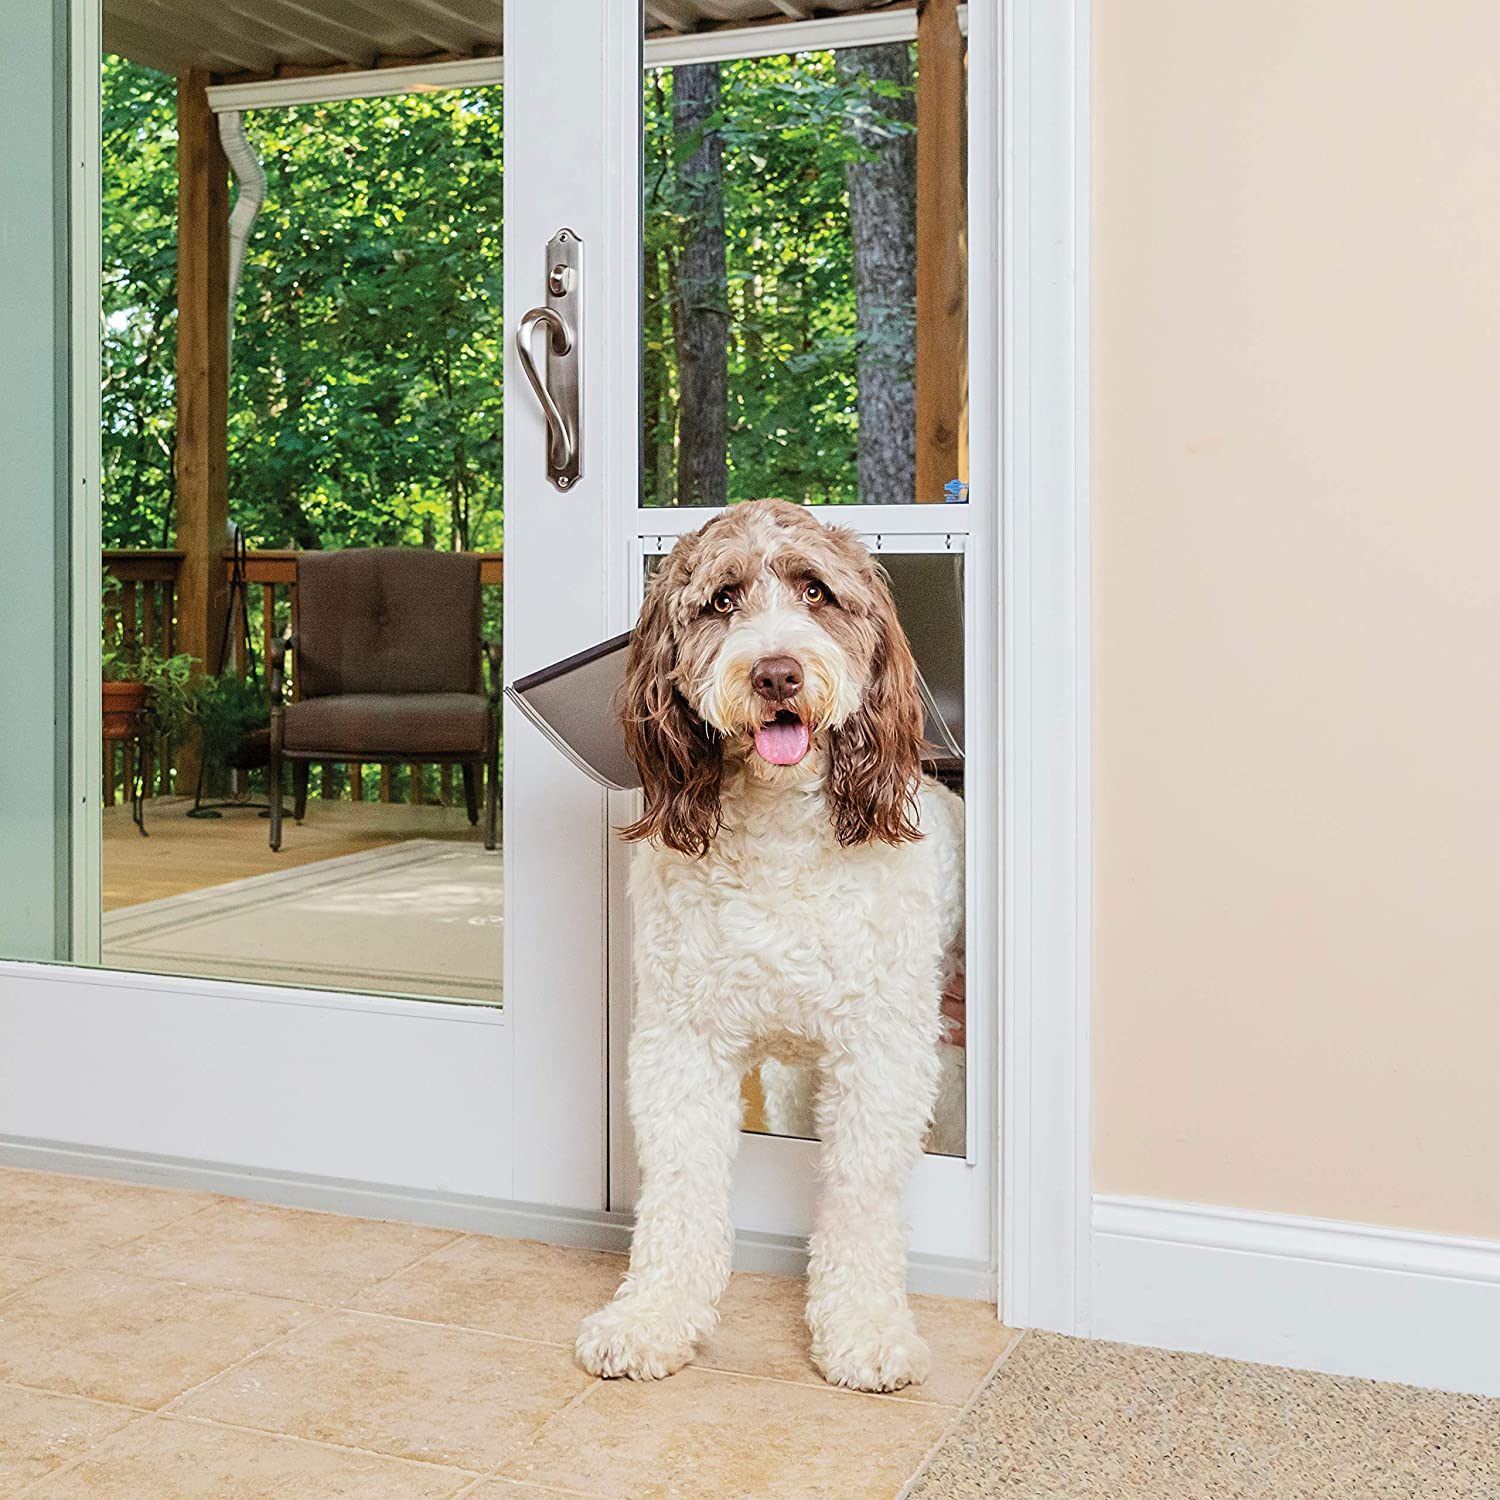 PetSafe – 1-Piece Sliding Glass Door Insert for Dogs and Cats